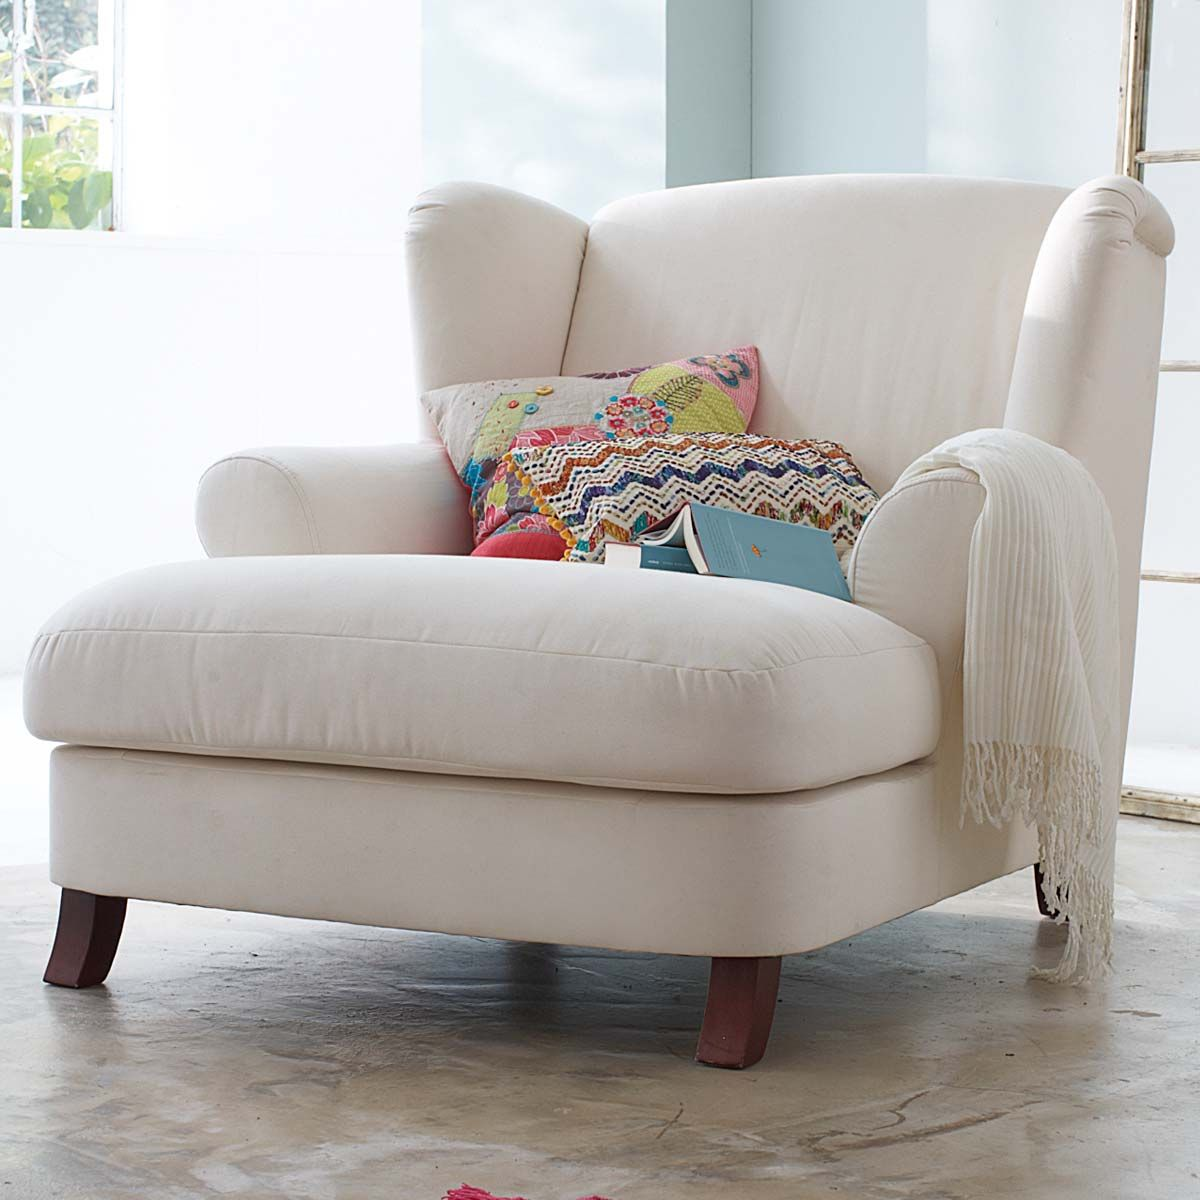 White Chairs For Bedroom Dish Chair Ikea Dream Via Somewhere North To Build A Home Comfy Reading